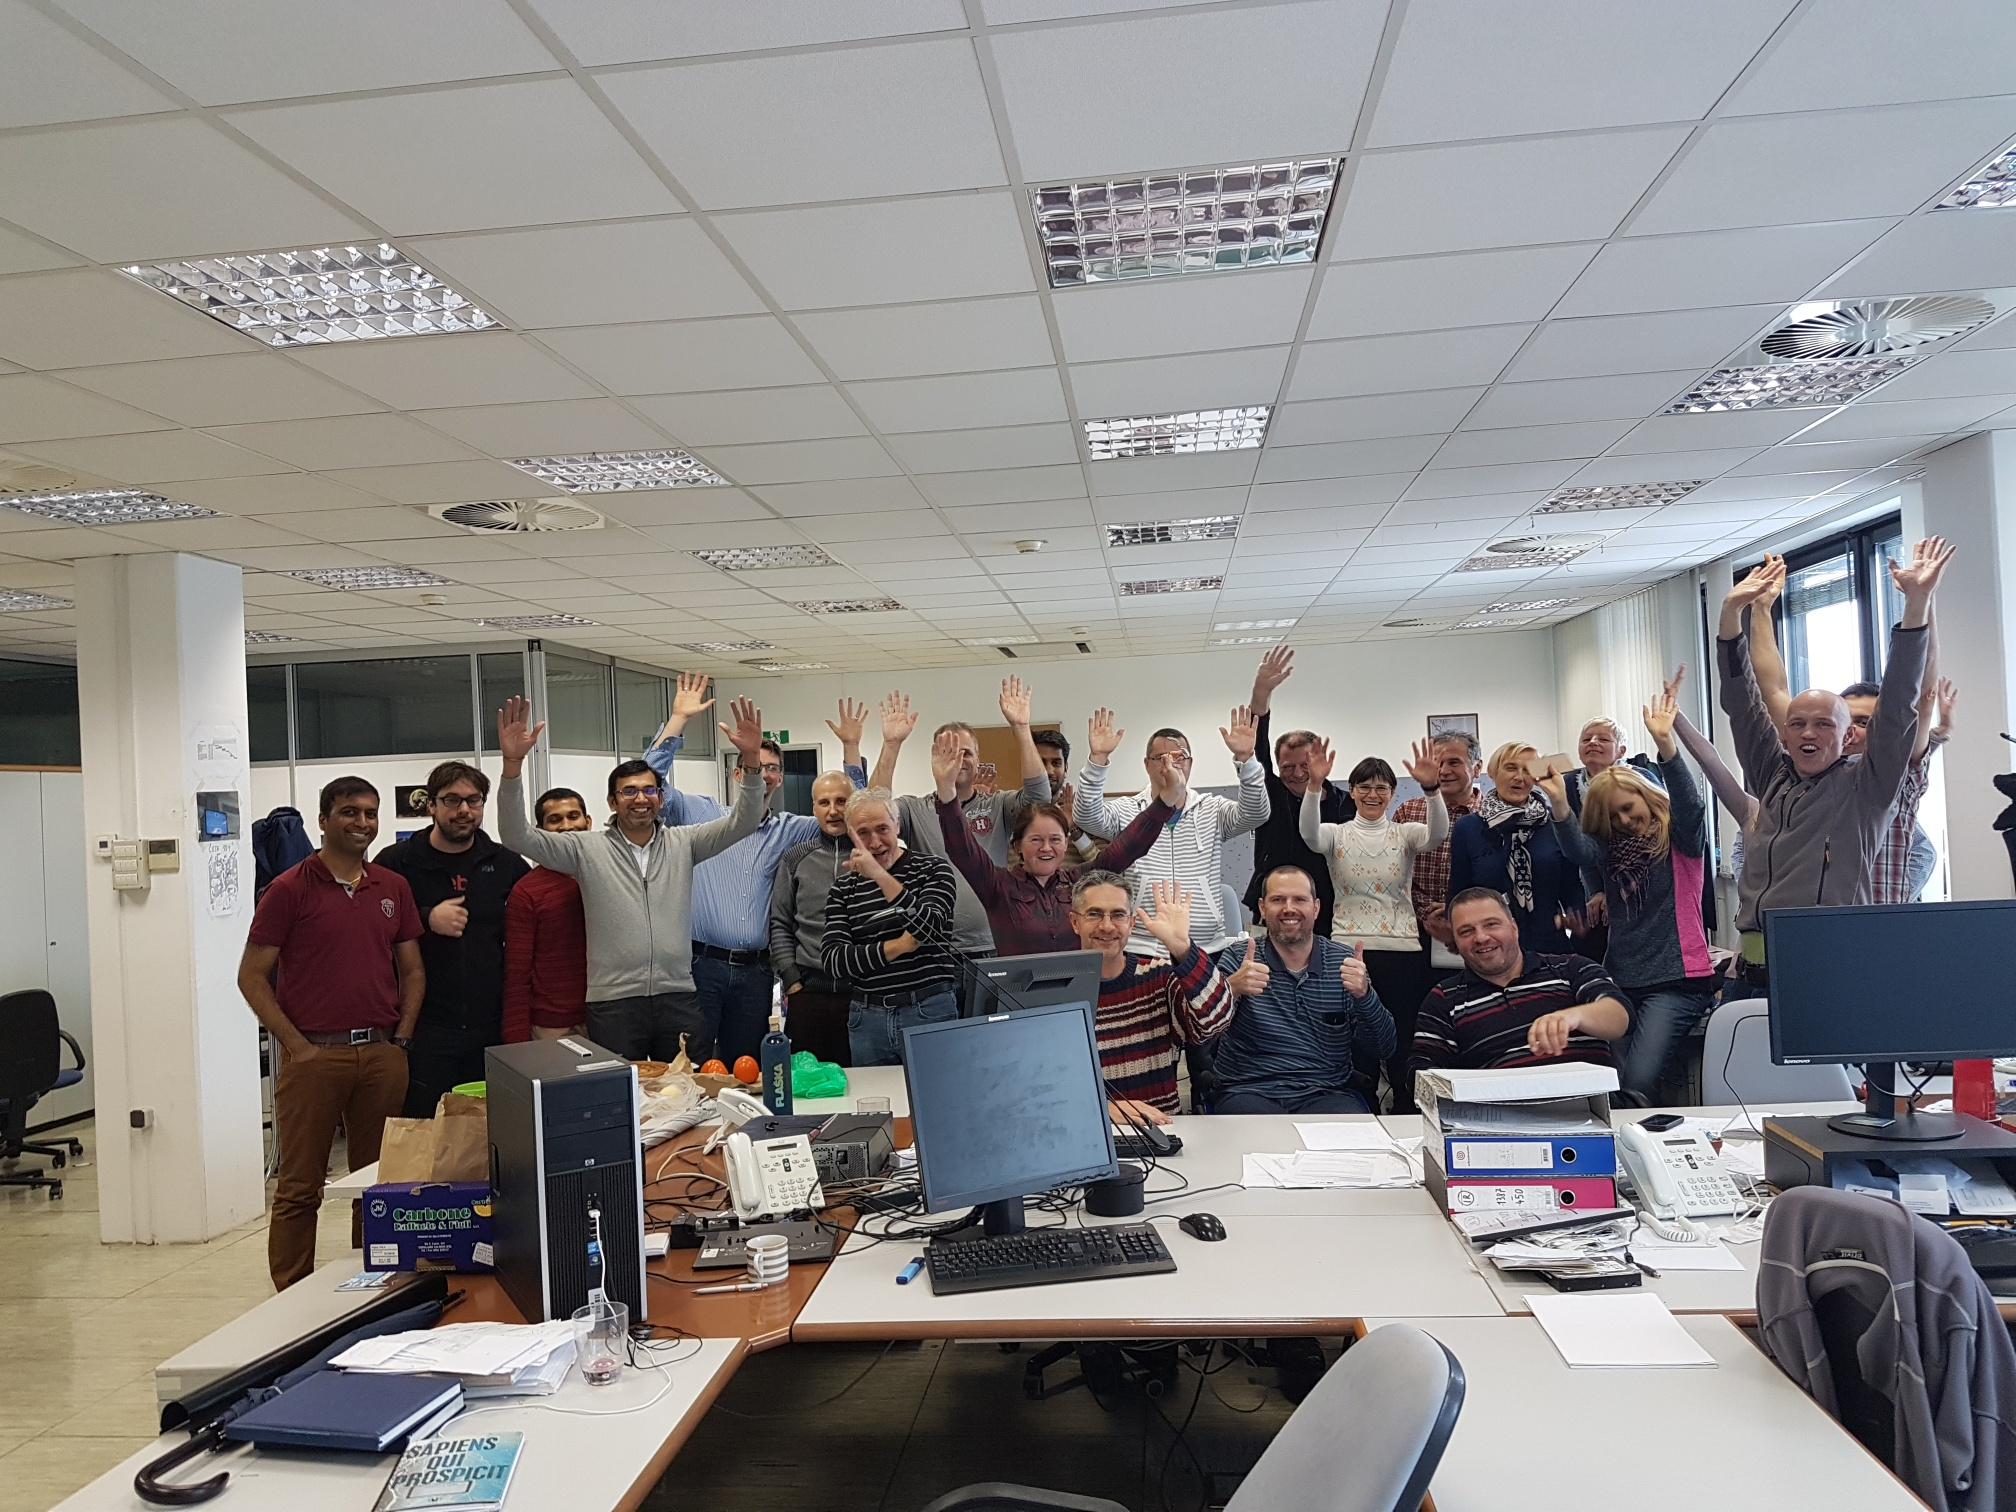 The IT team celebrating the successful go-live